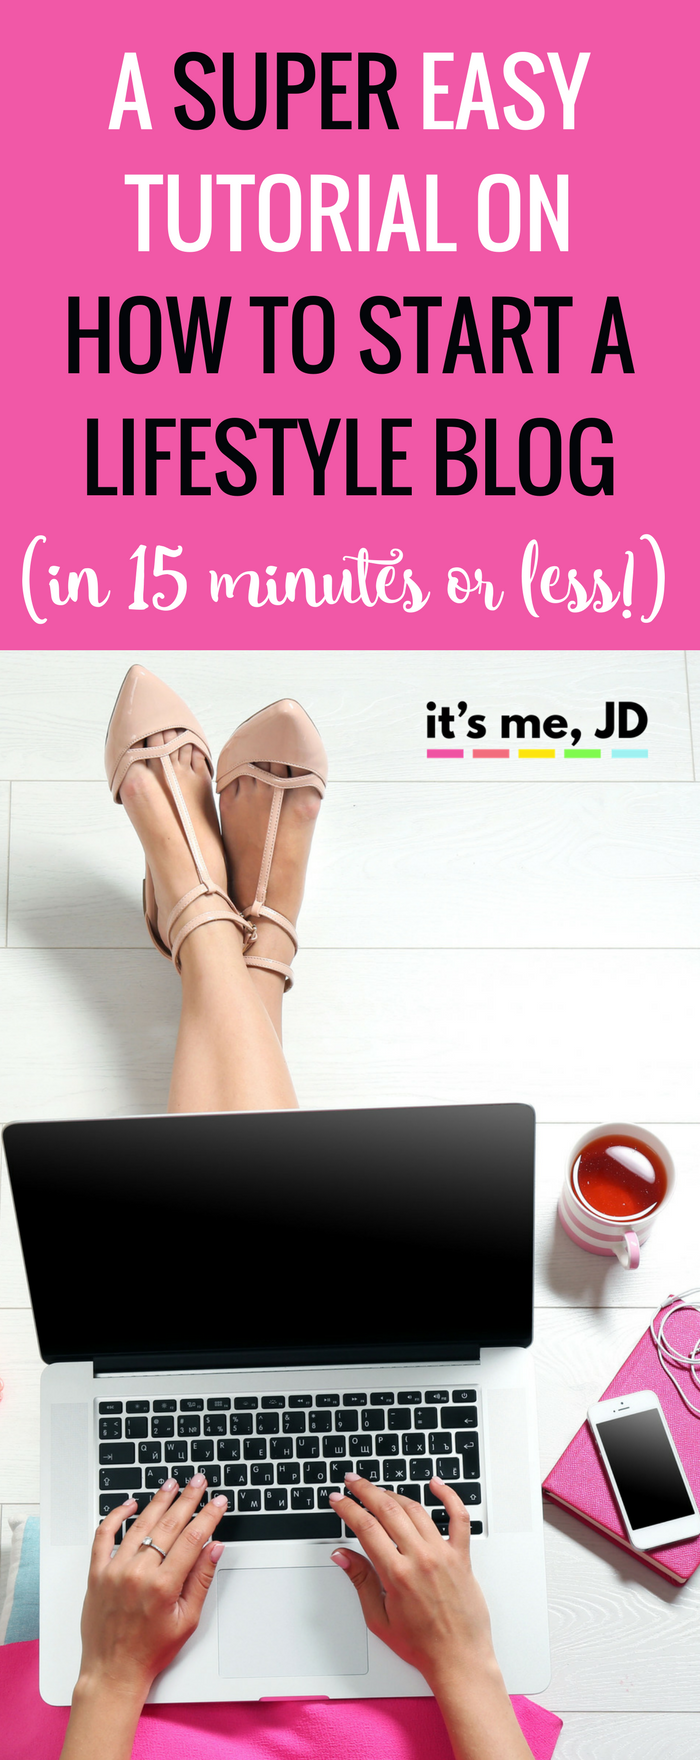 How To Start A Lifestyle Blog Tutorial (15 Minutes or Less!) Tips, Ideas, Social Media